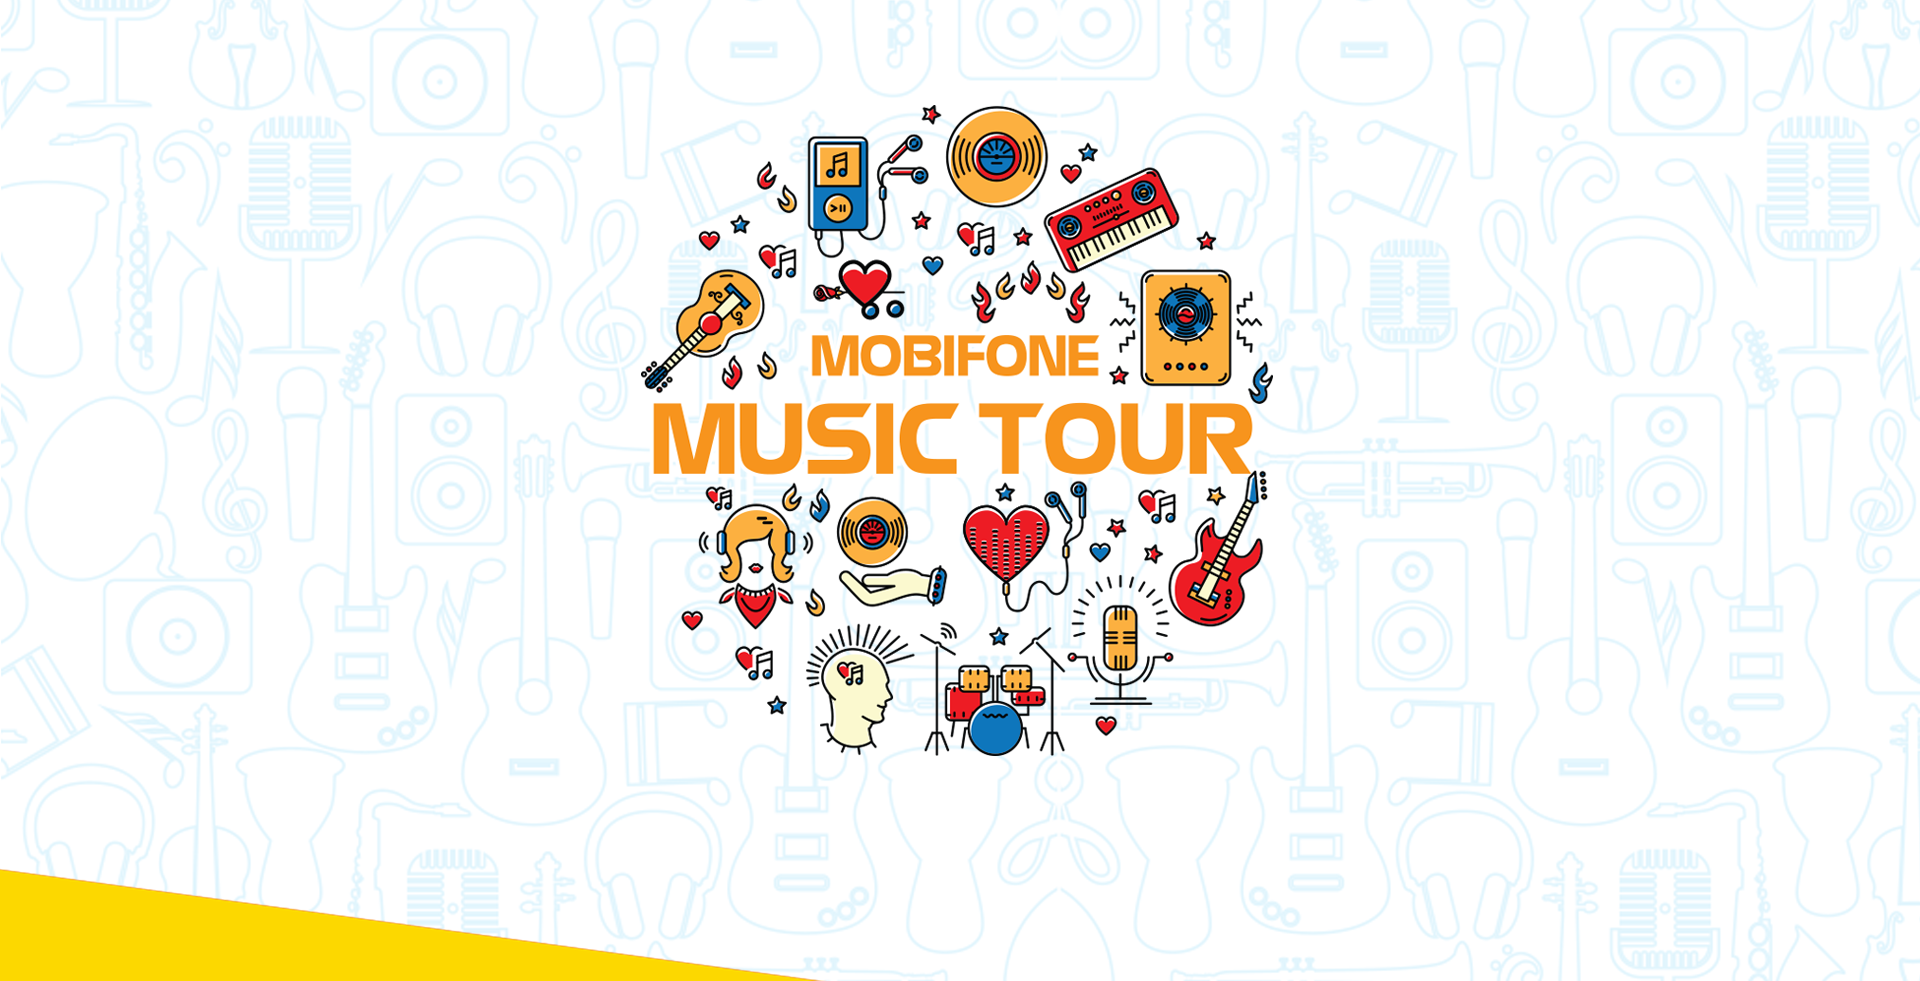 Mobifone Music Tour